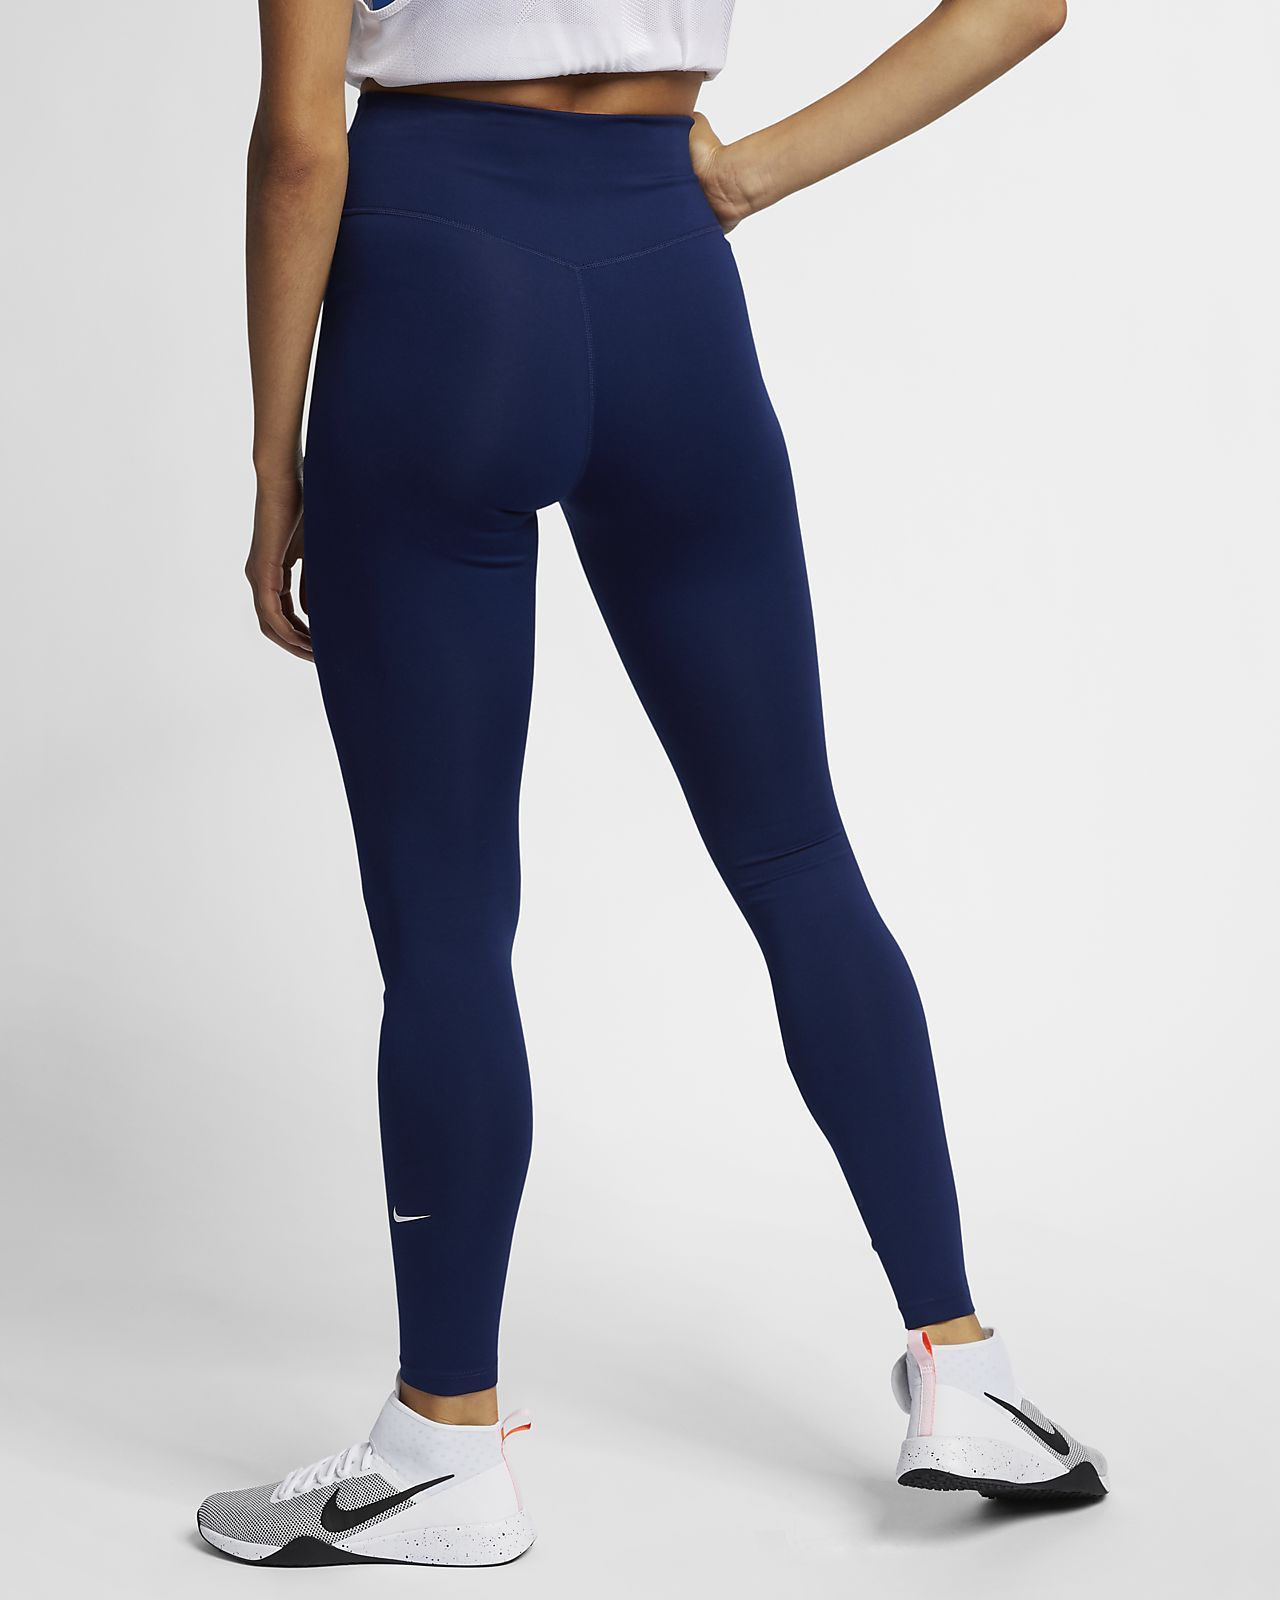 00a47c4f5a5 What do reviews say about the Nike One leggings